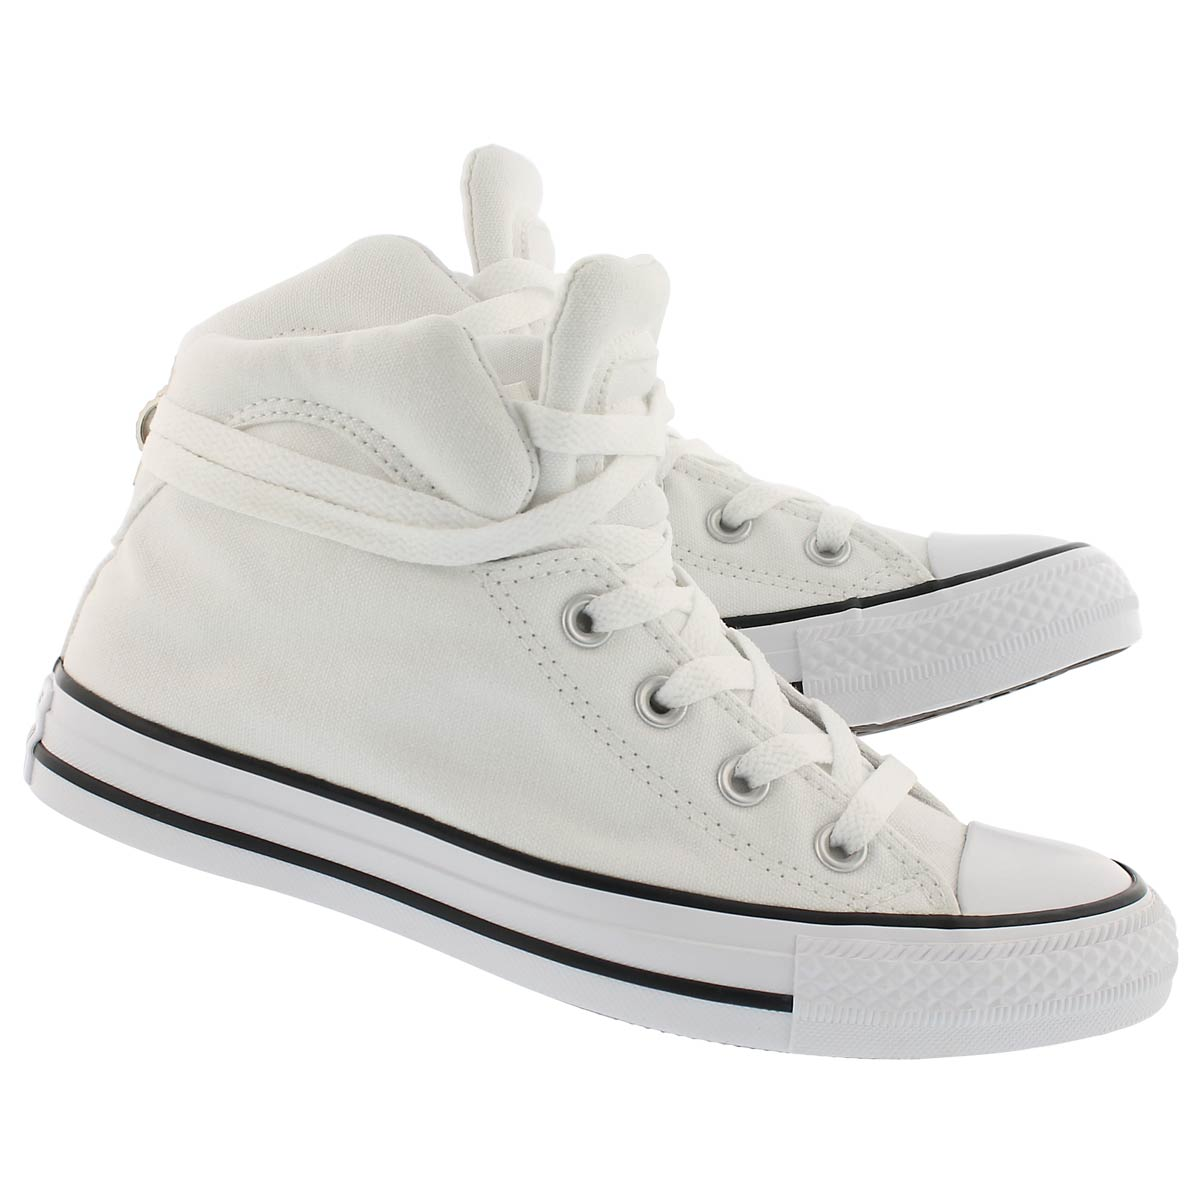 Lds CT A/S Brookline white high top